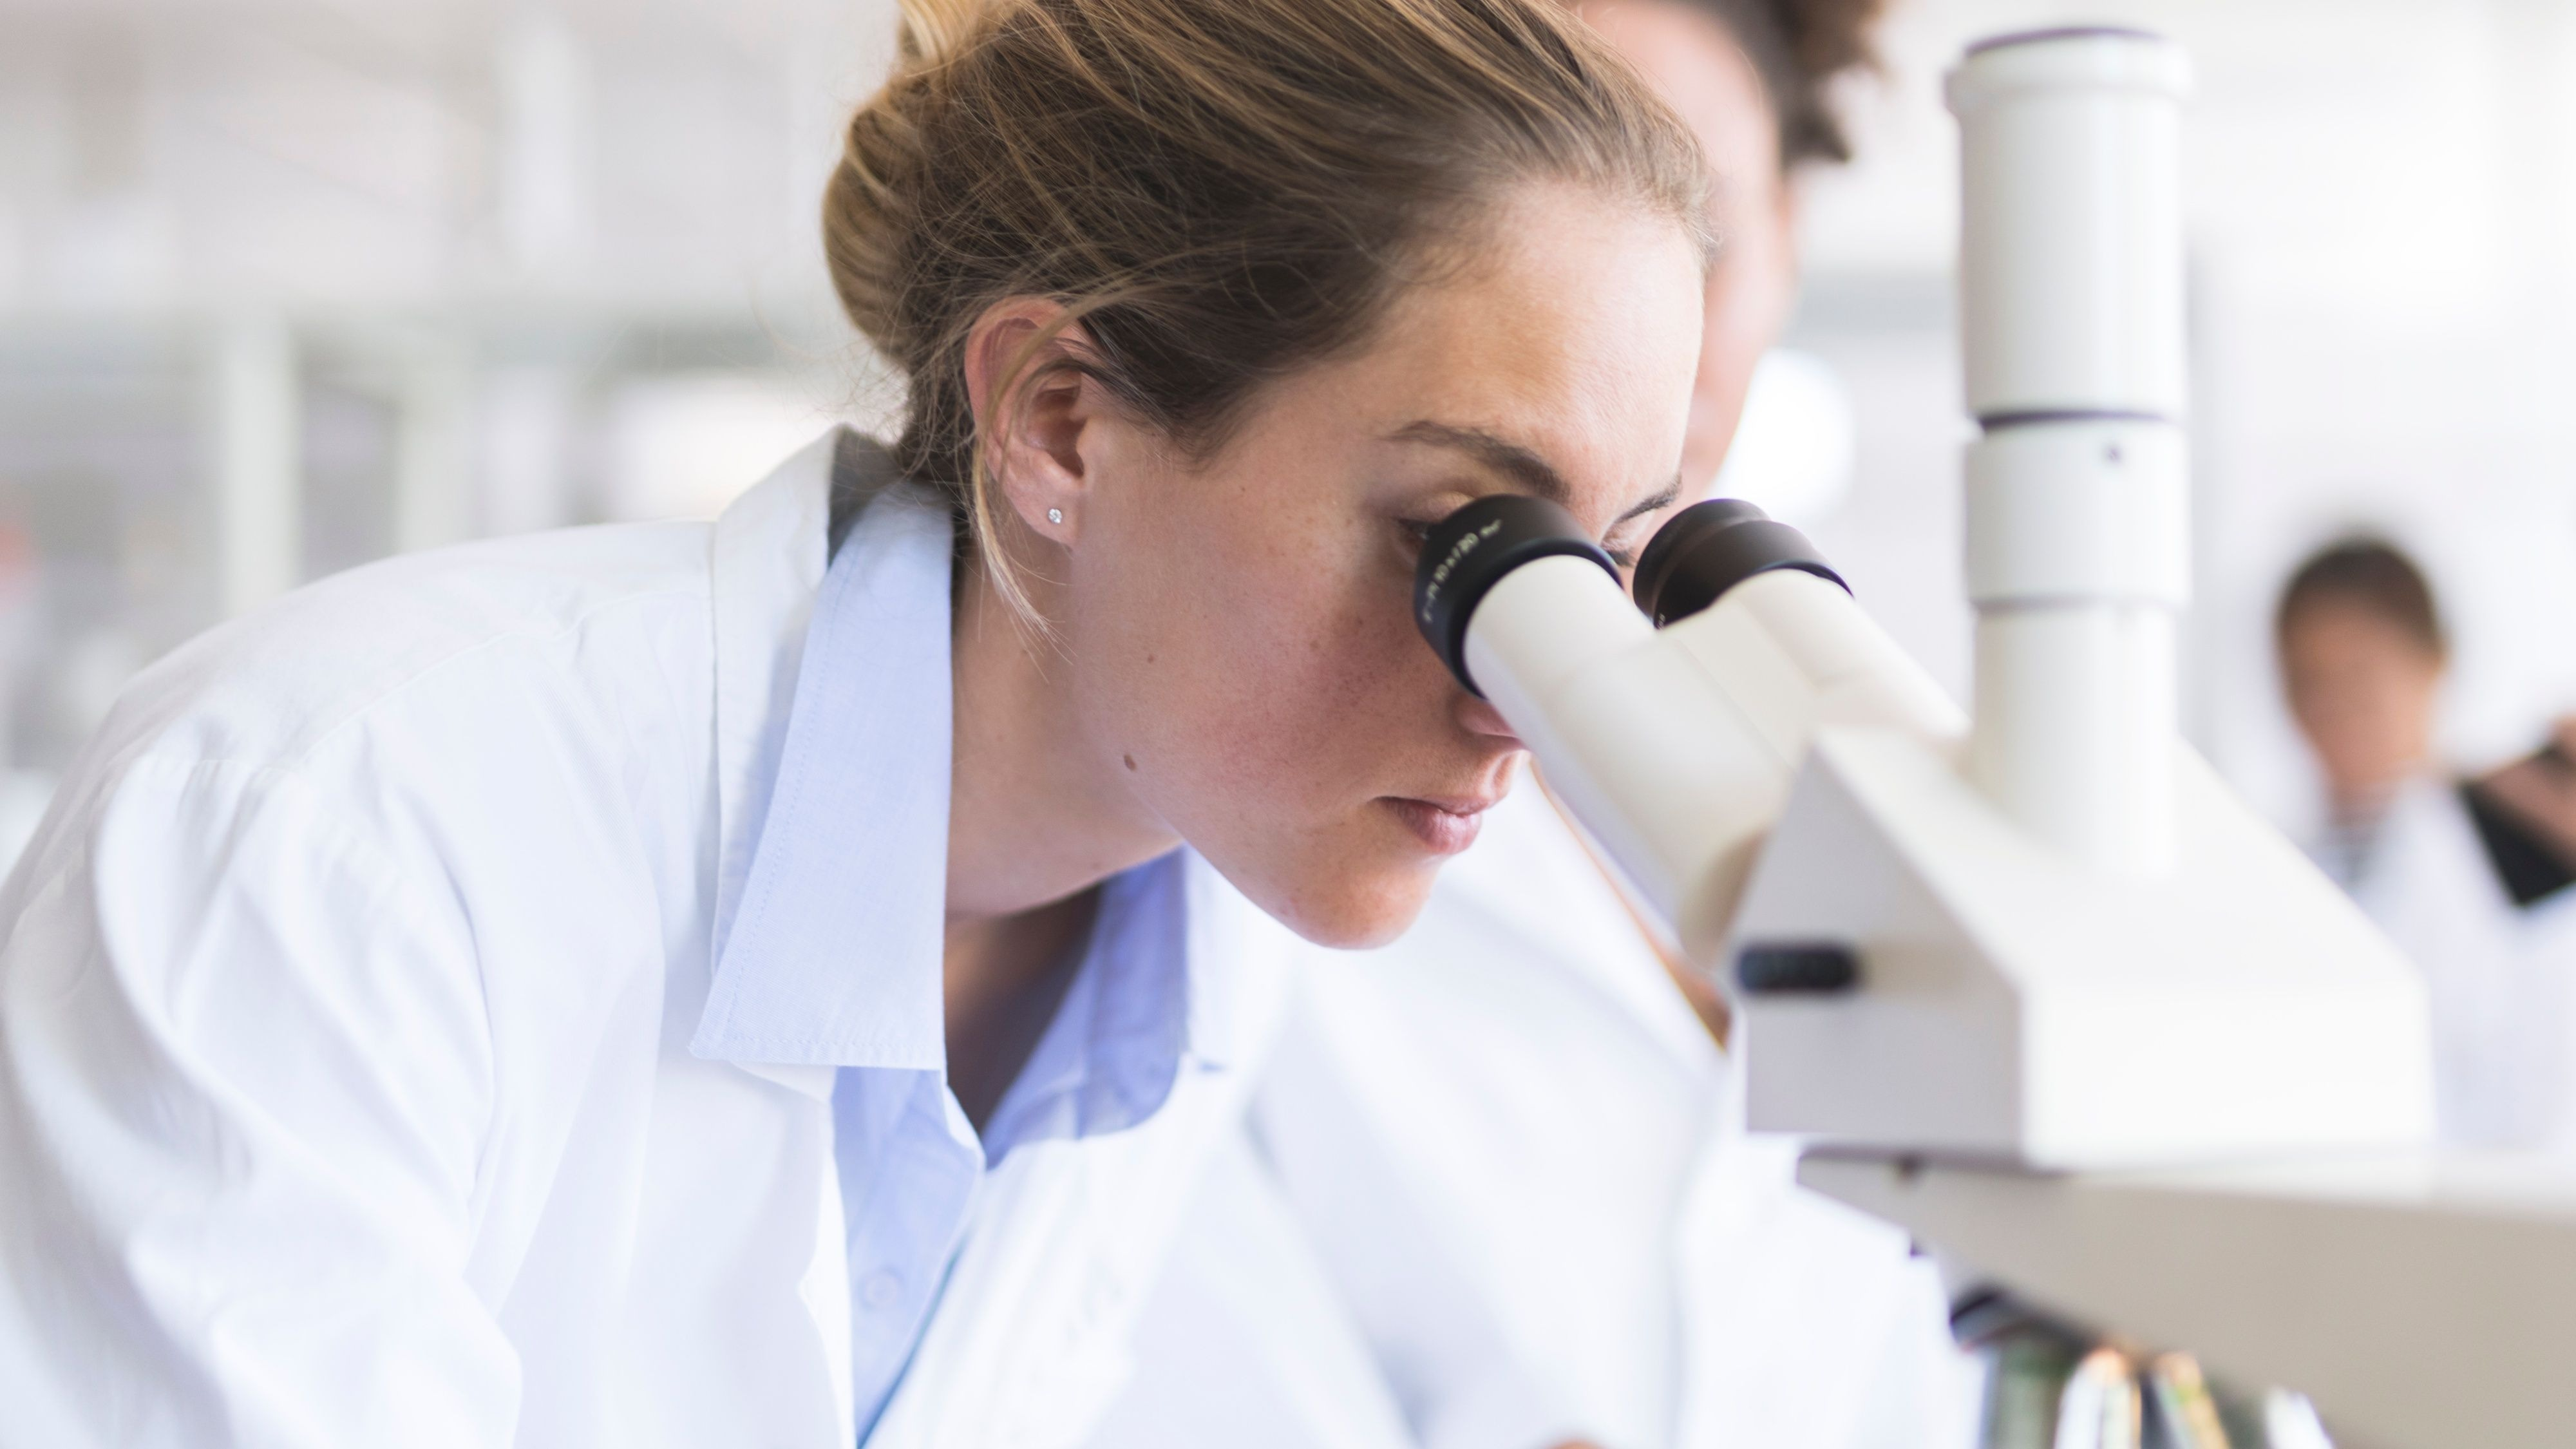 woman looking through a microscope.